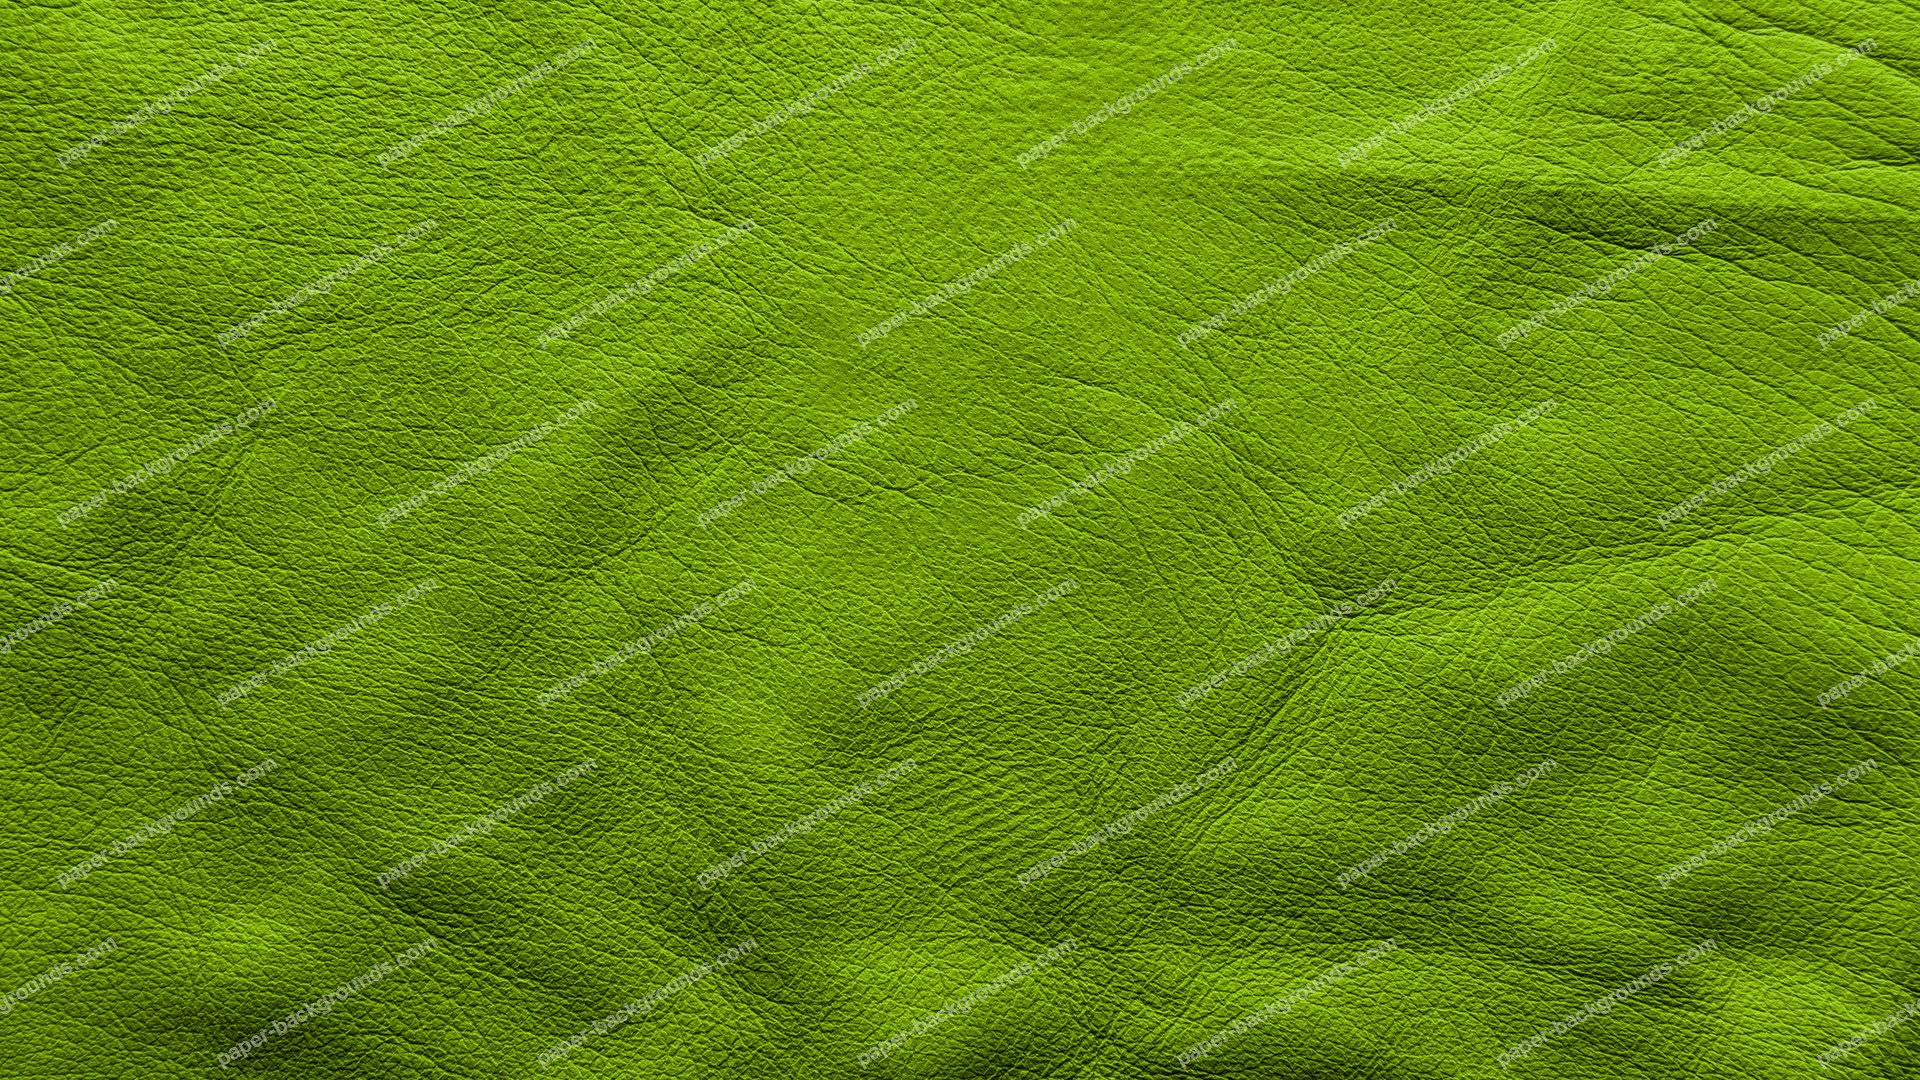 Green Soft Leather Background HD 1920 x 1080p